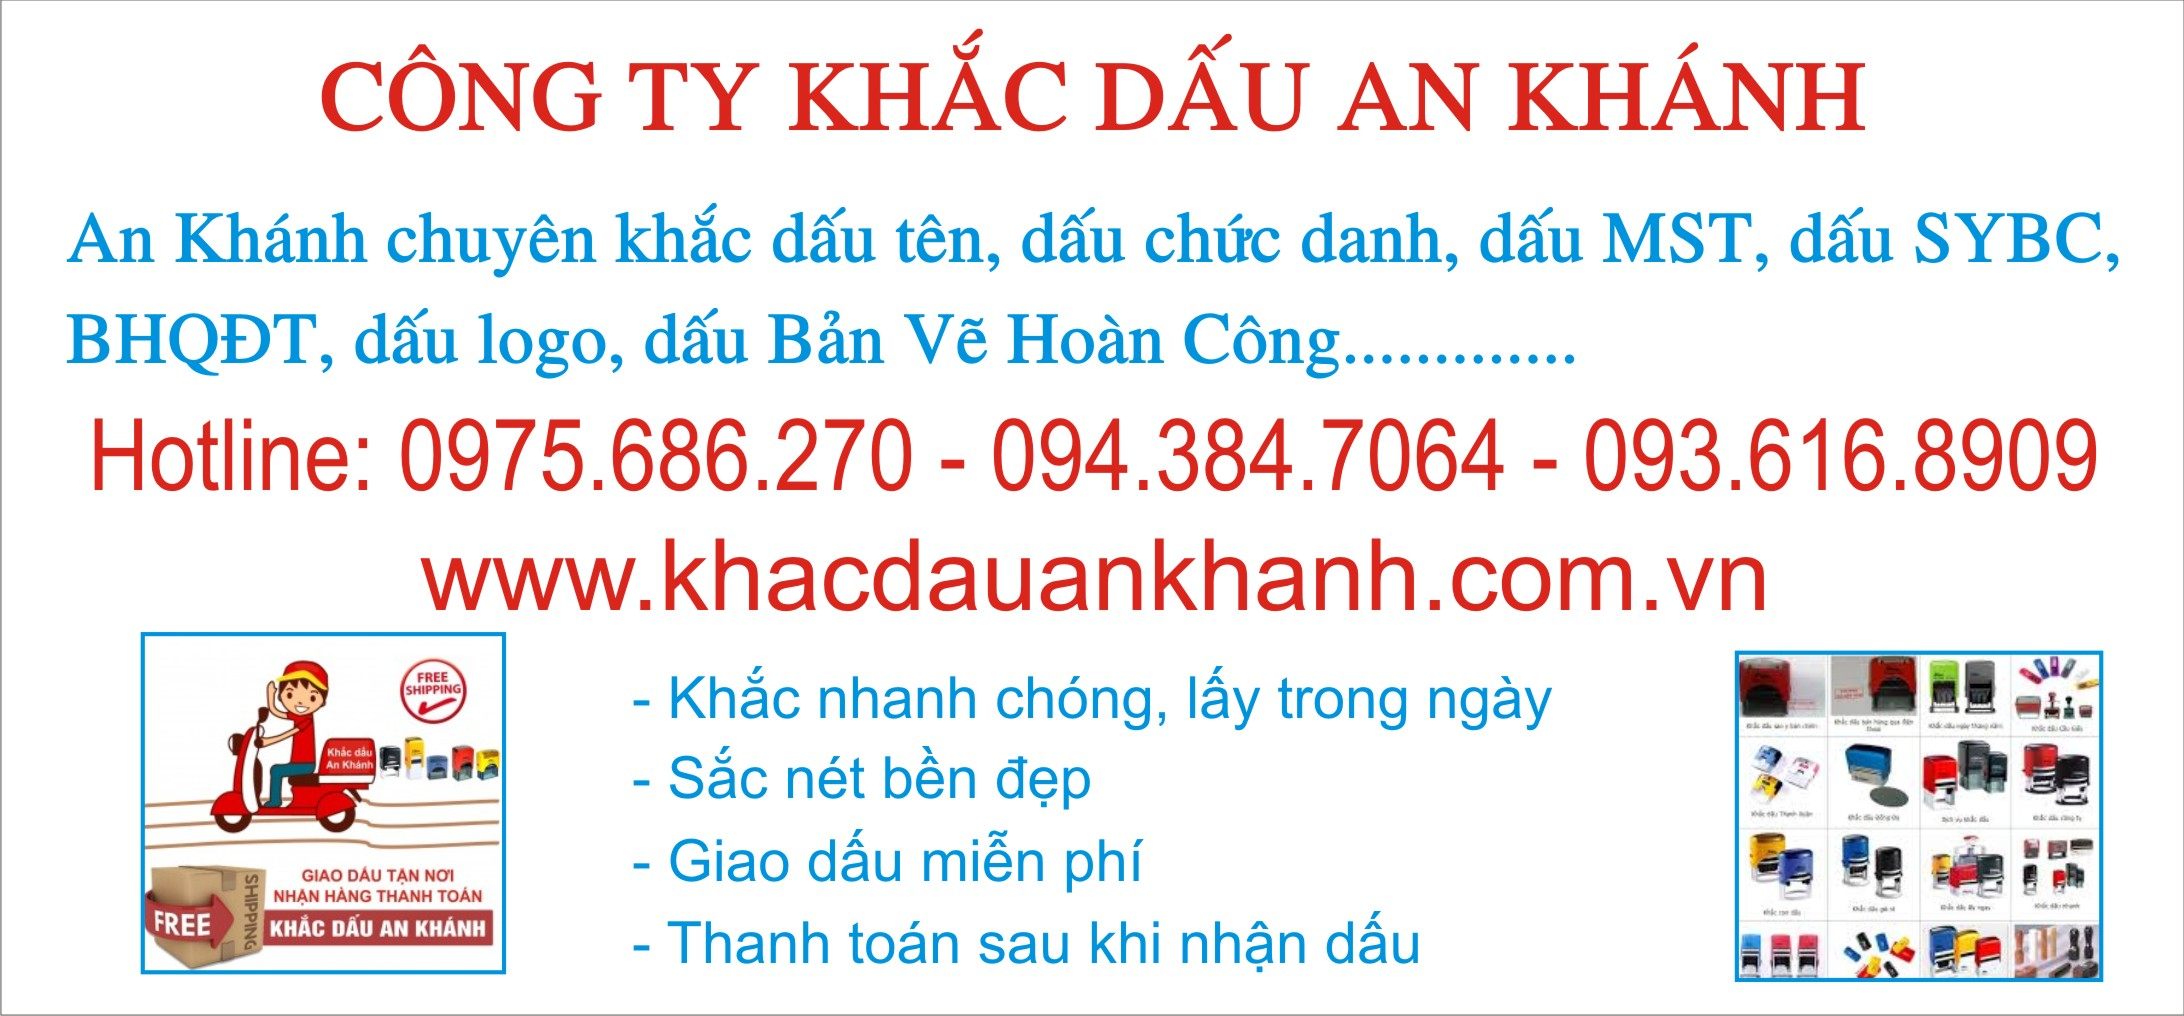 khac dau ten ha noi 2